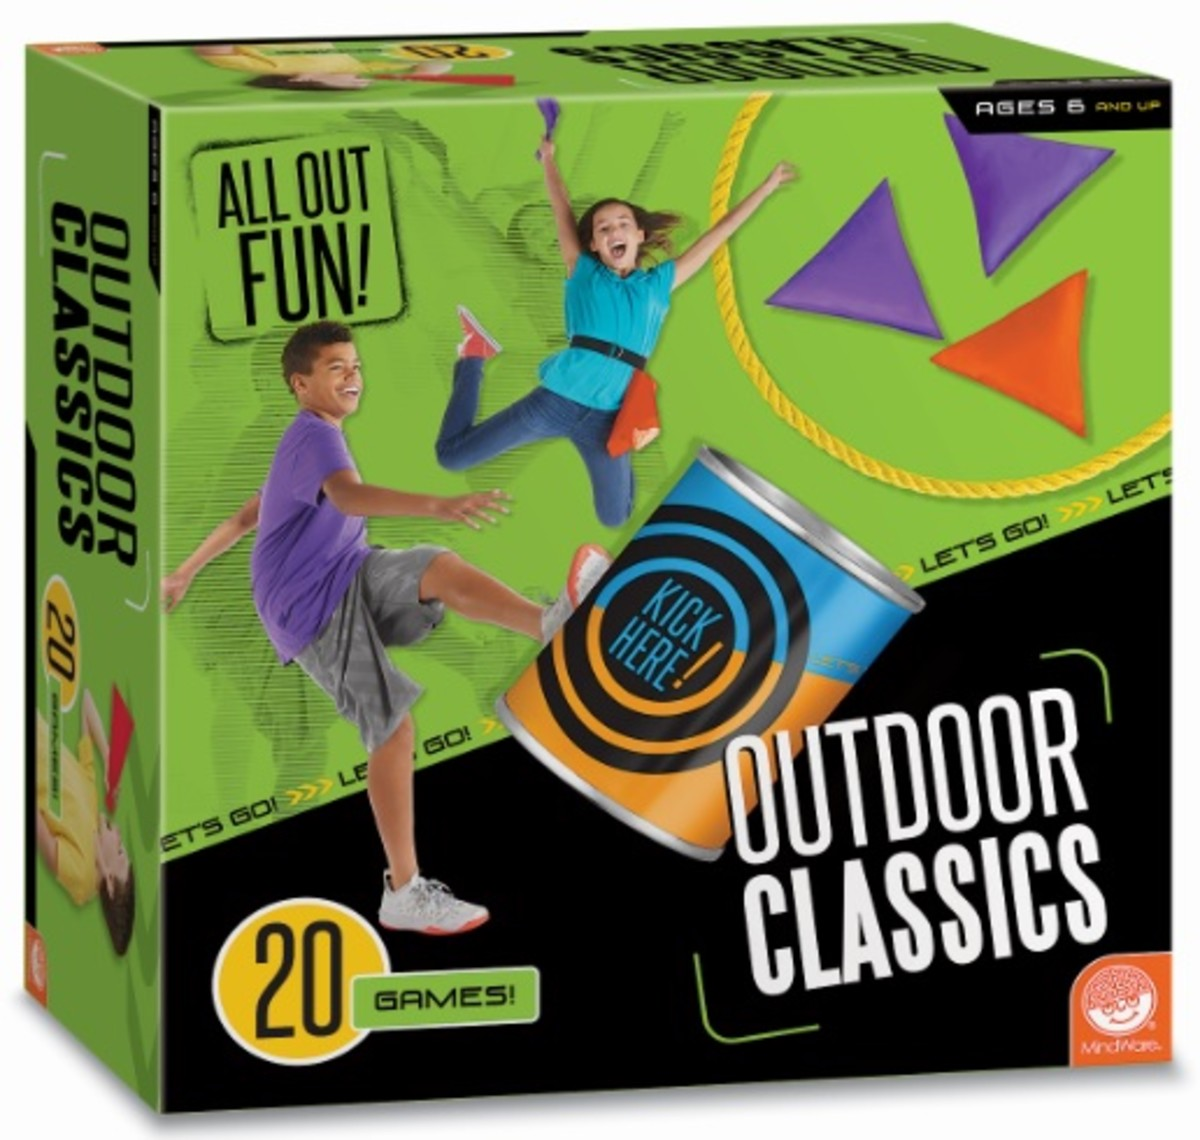 All Out Fun Outdoor Game Classics